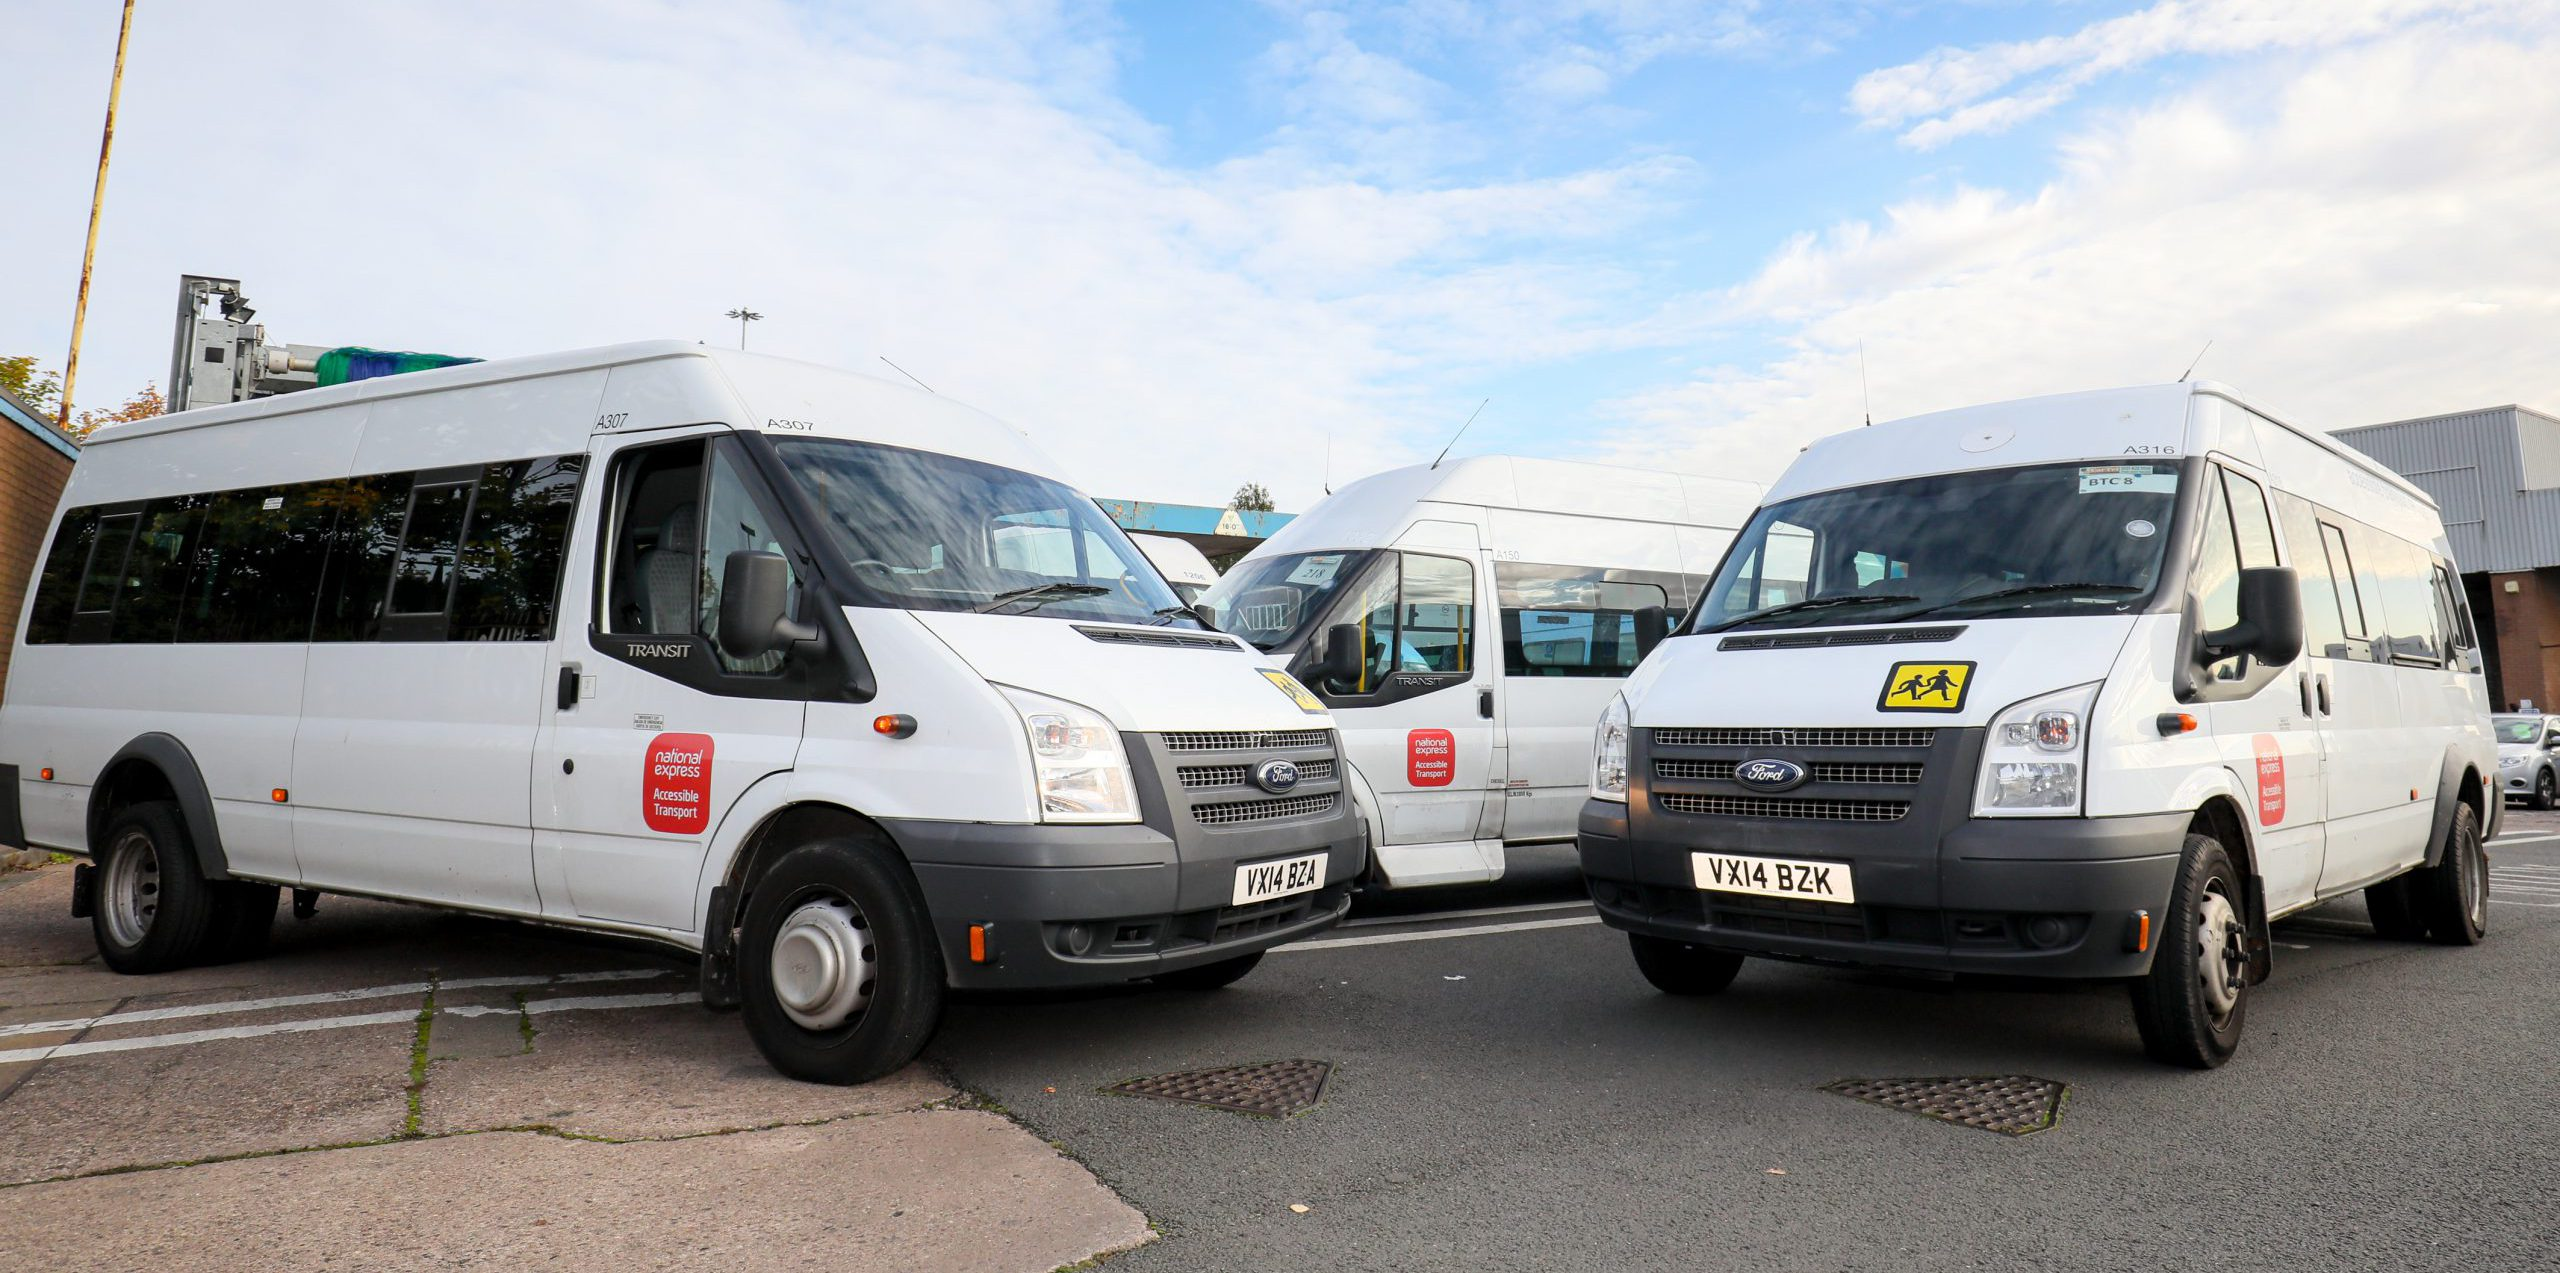 New free shuttle bus service for NHS and social care staff launched